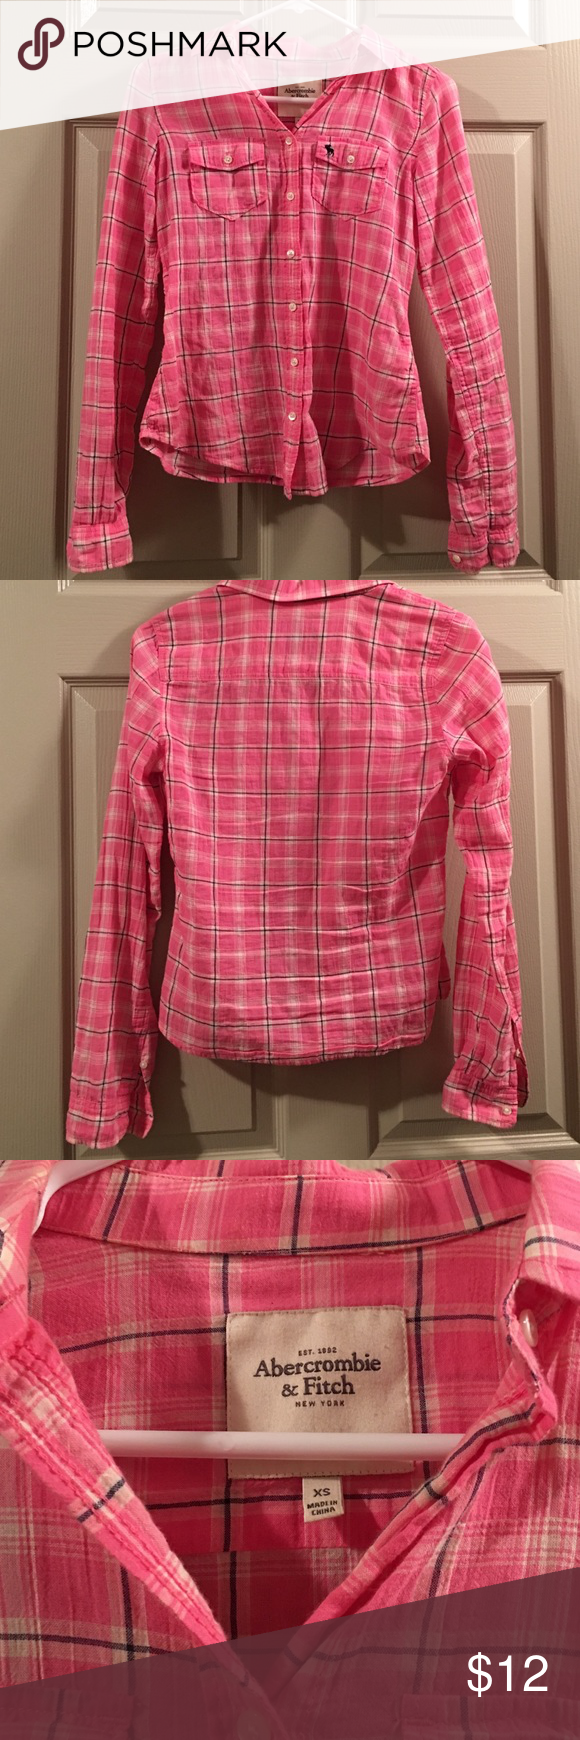 Abercrombie & Fitch pink long sleeved western top Previously loved Abercrombie & Fitch pink western top. Has two front pockets and sleeves with buttons allowing them to be rolled up. In very good condition/not missing any buttons Abercrombie & Fitch Tops Button Down Shirts